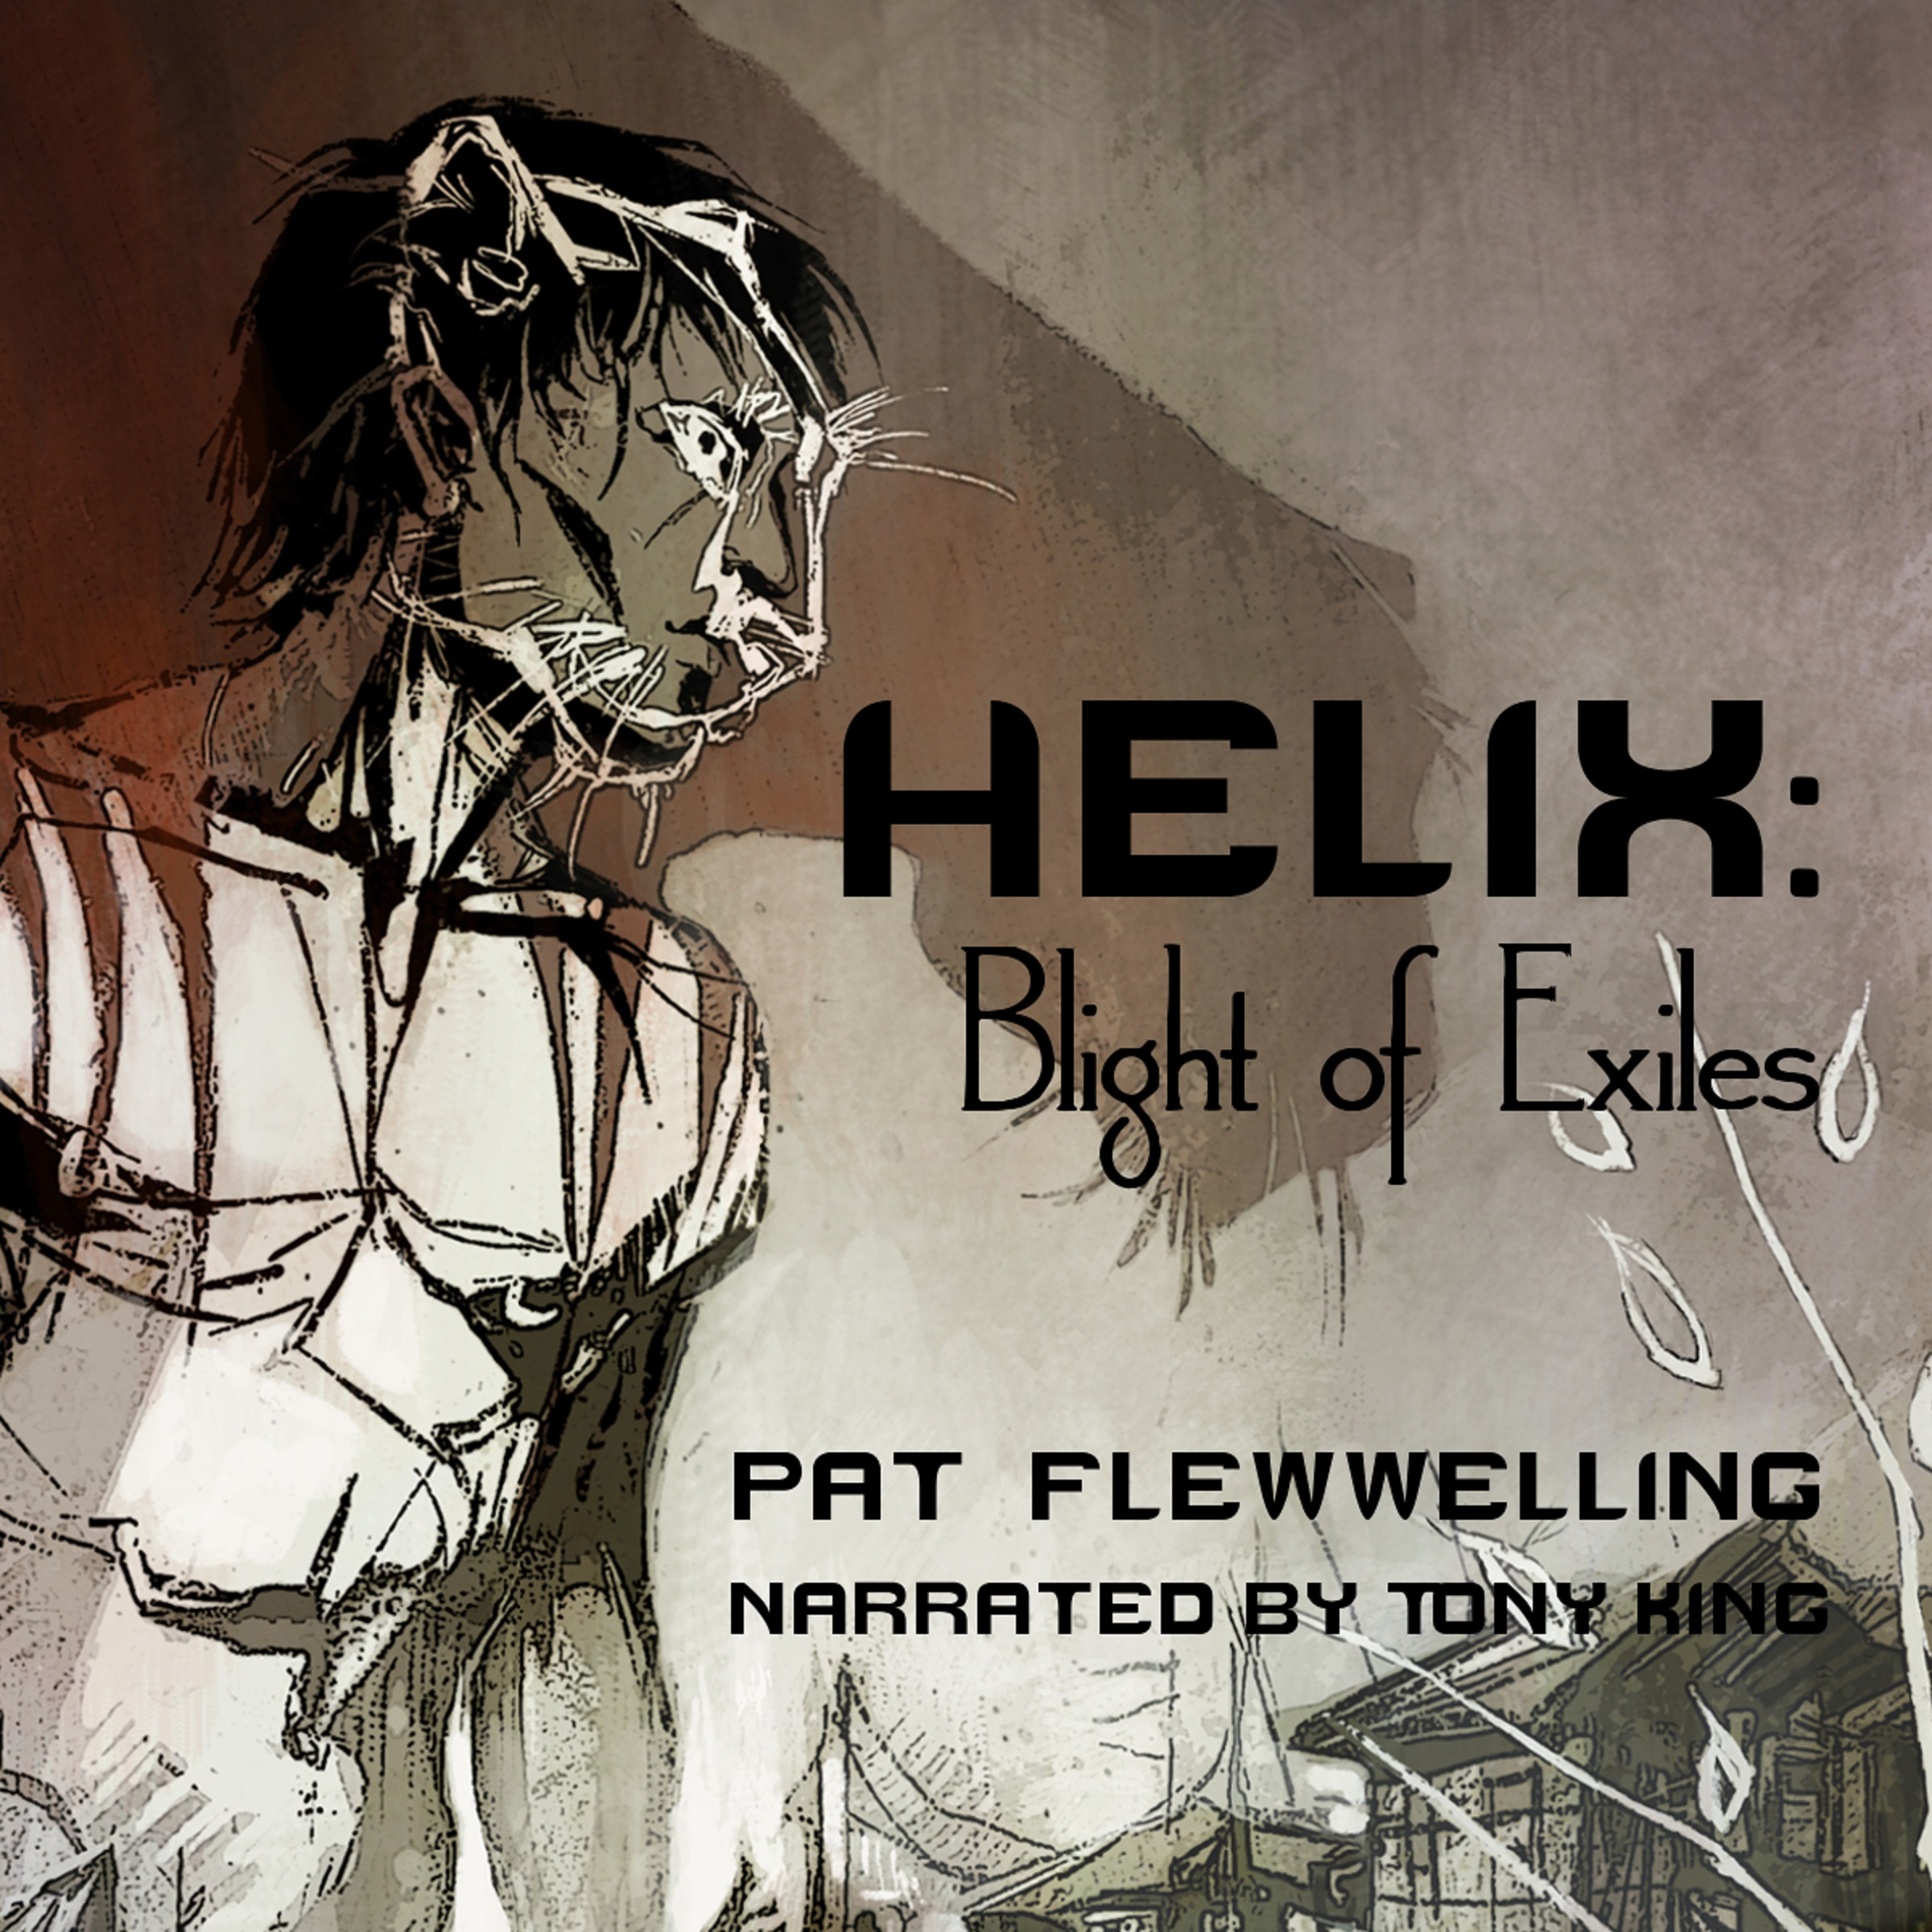 Helix: Blight of Exiles